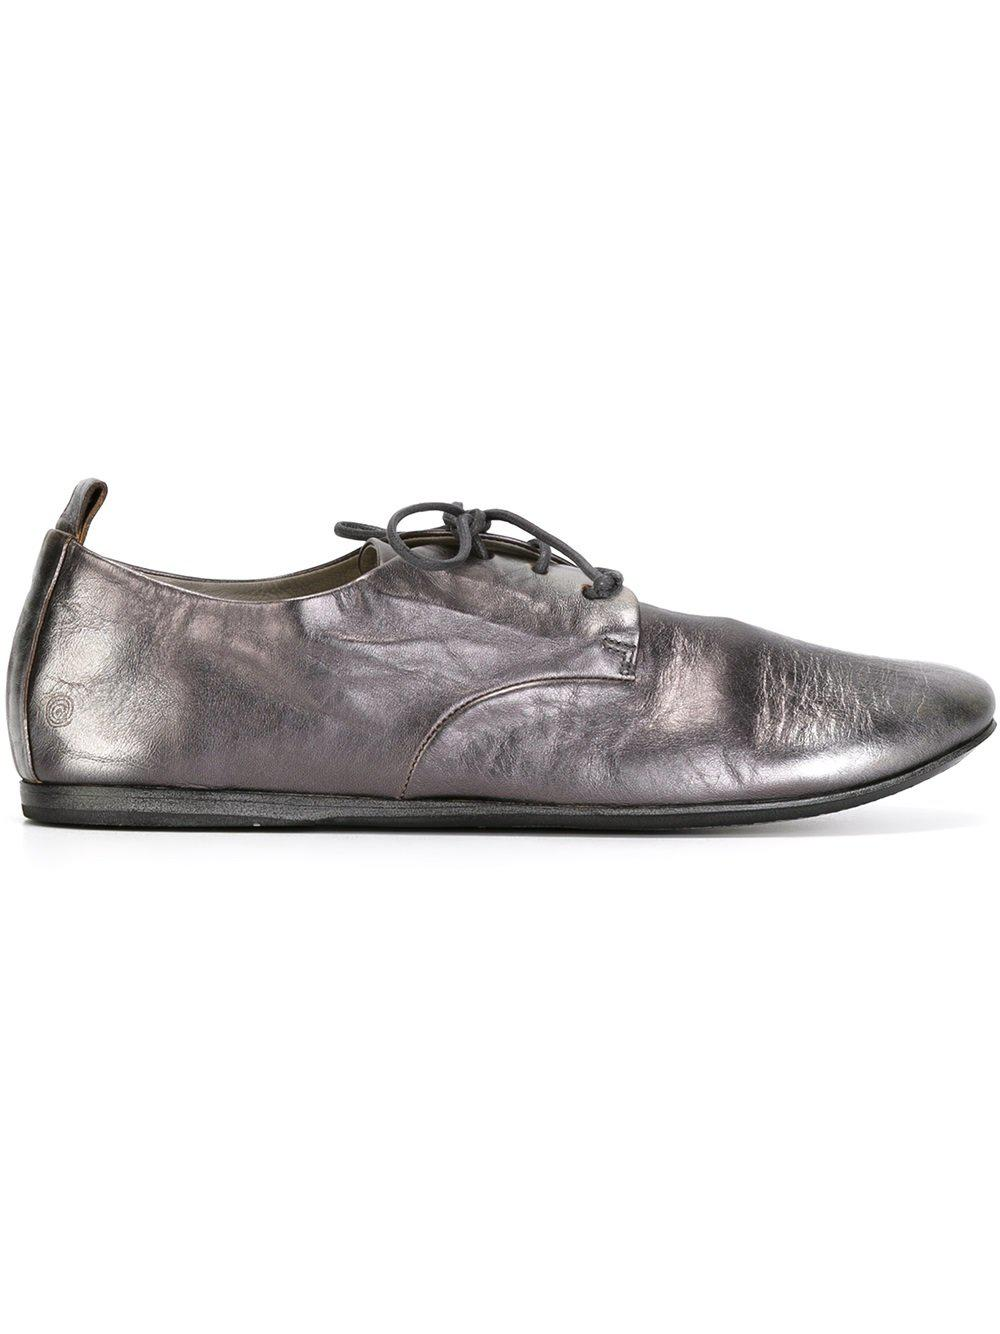 Marsèll Leather Metallic Derby Shoes in Grey (Grey) for Men